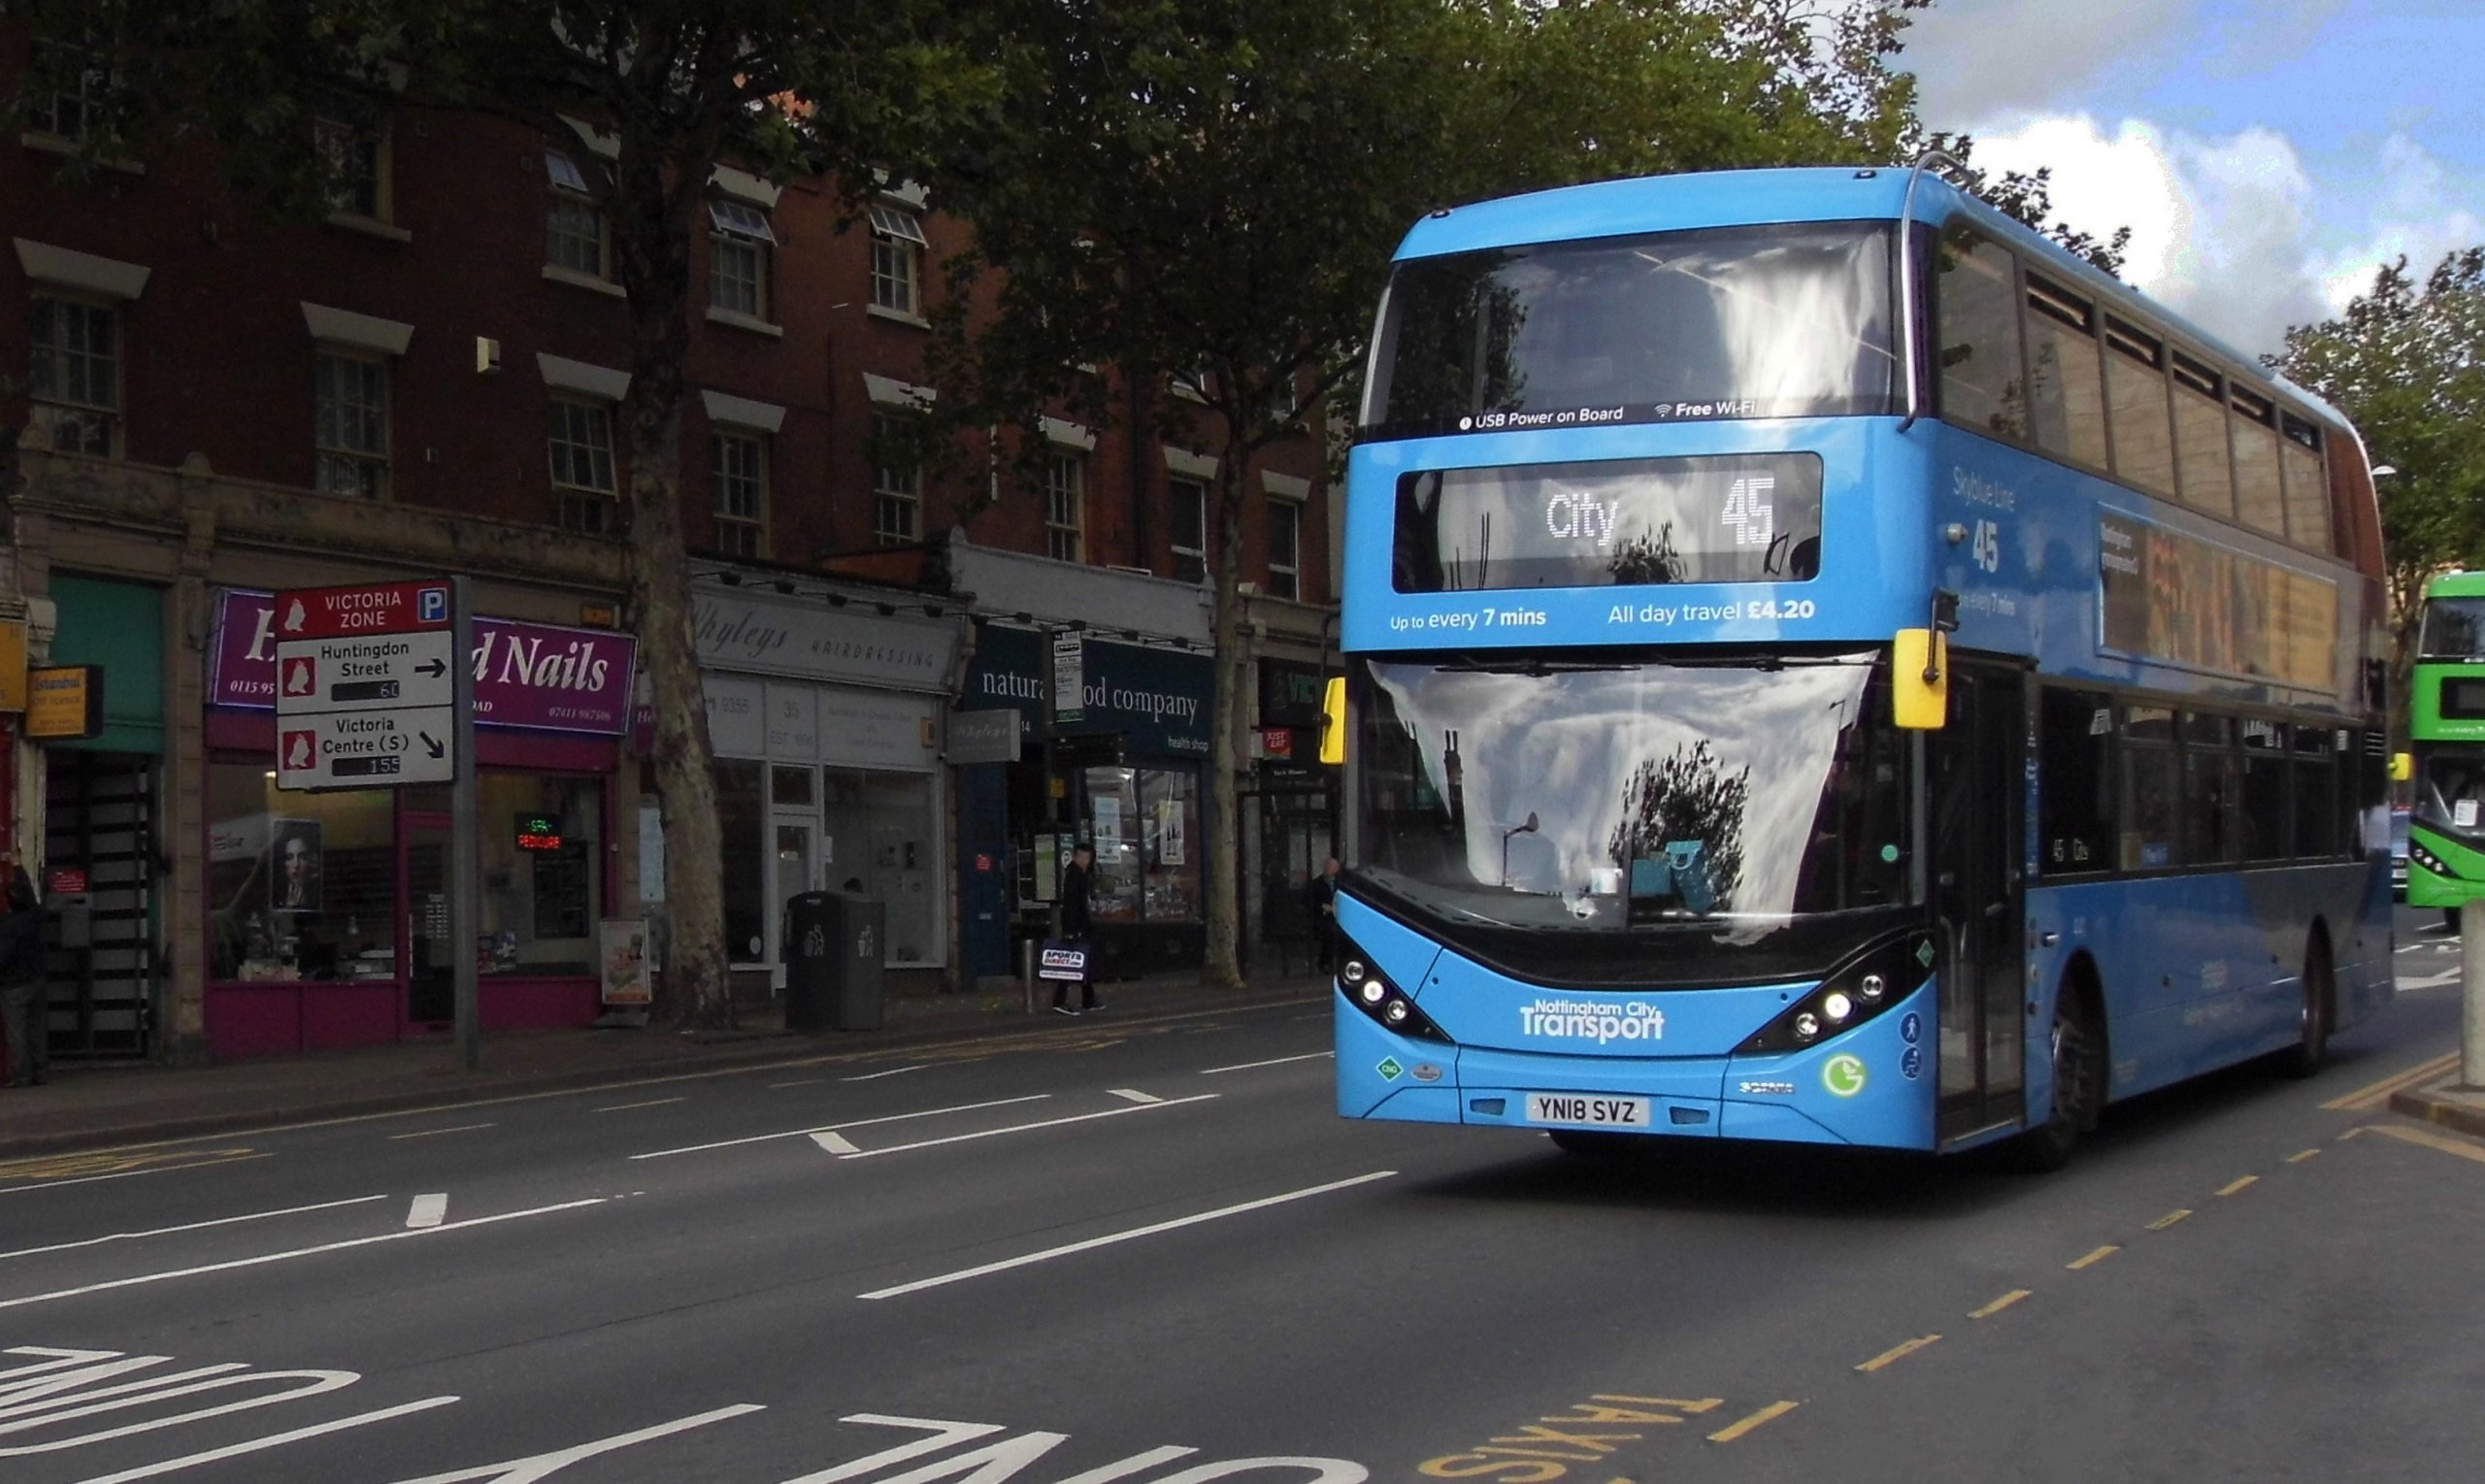 NCT 45 bus on Mansfield Road